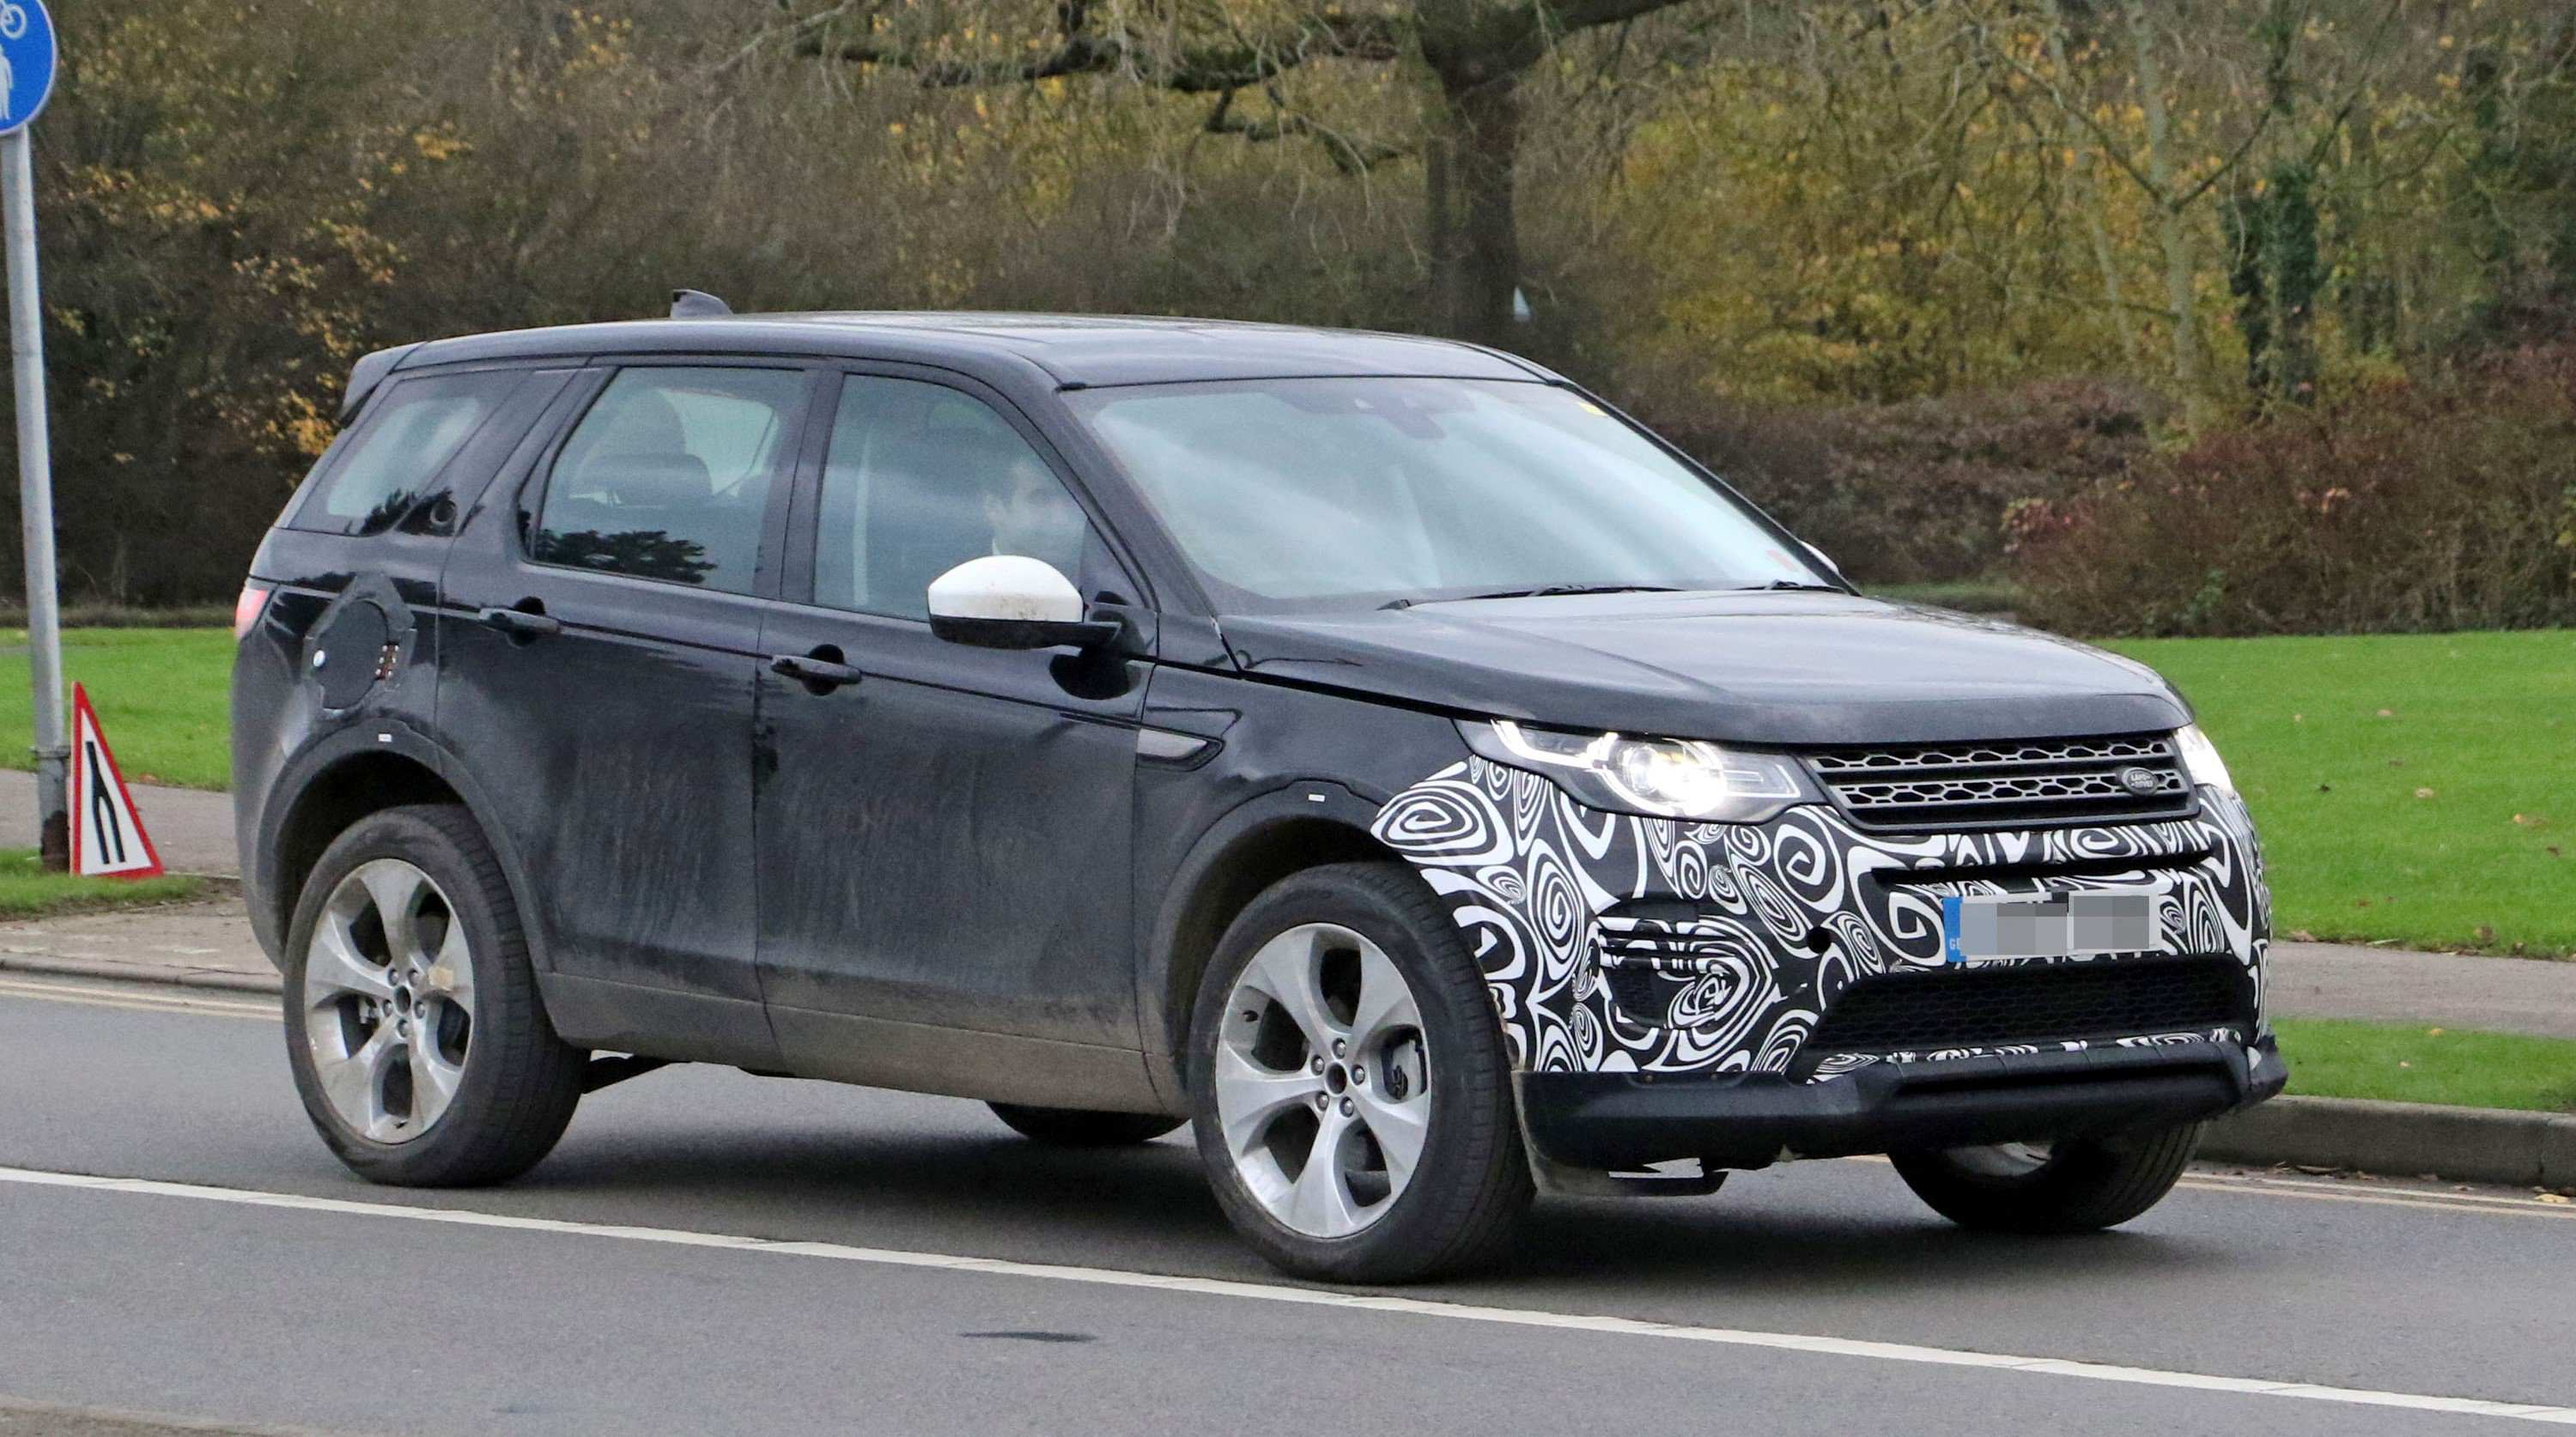 81 All New 2020 Land Rover Discovery Configurations